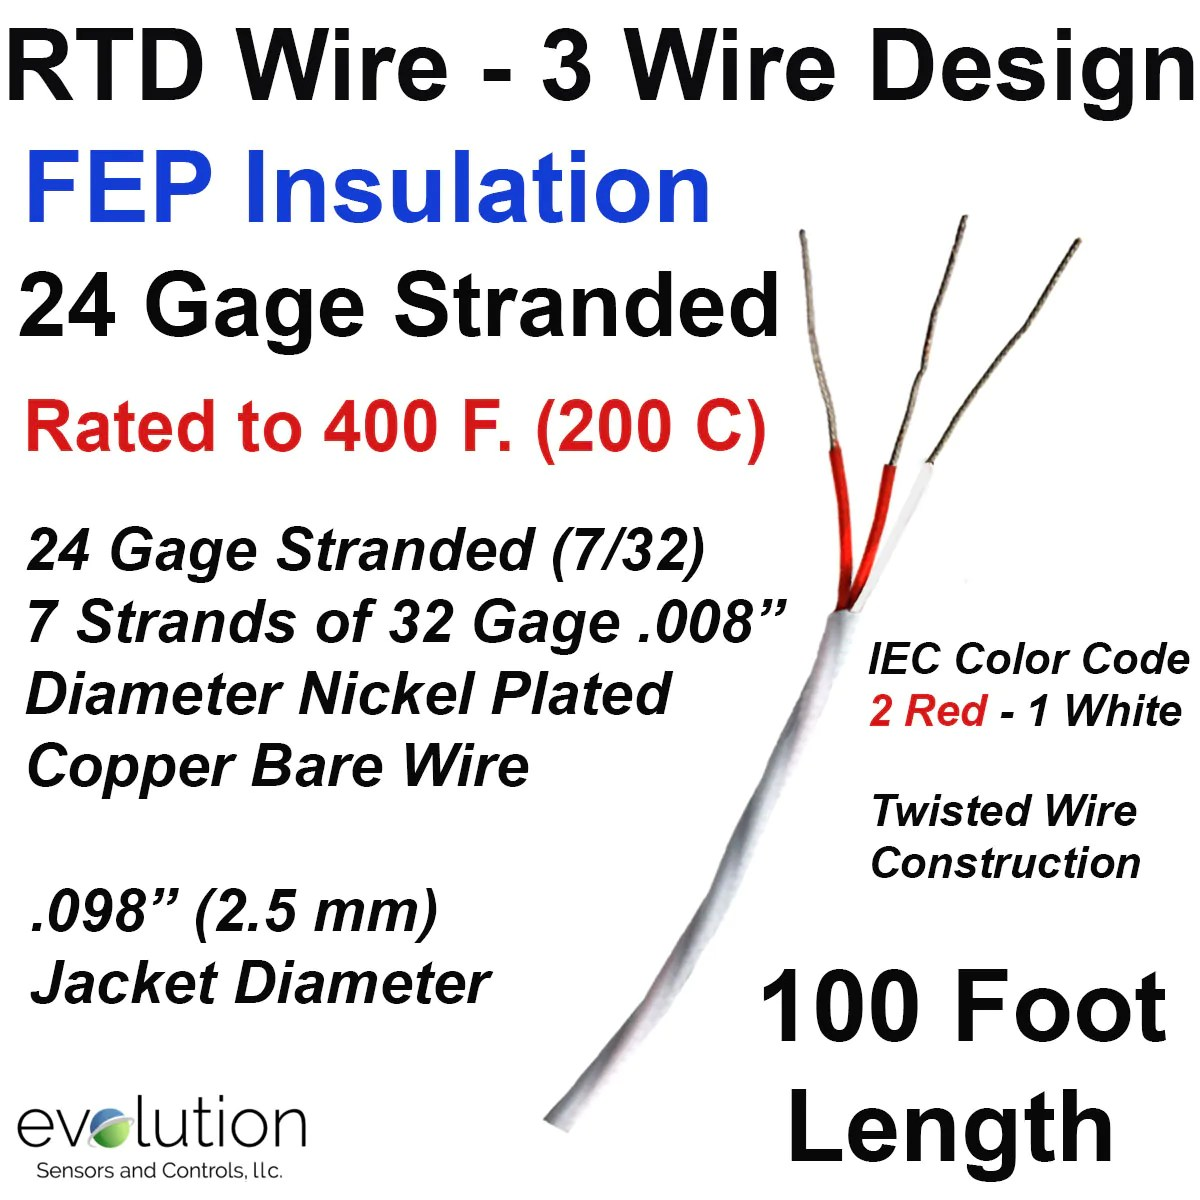 small resolution of rtd wire 3 wire design 24 gage stranded with fep insulation 100 2 wire rtd color